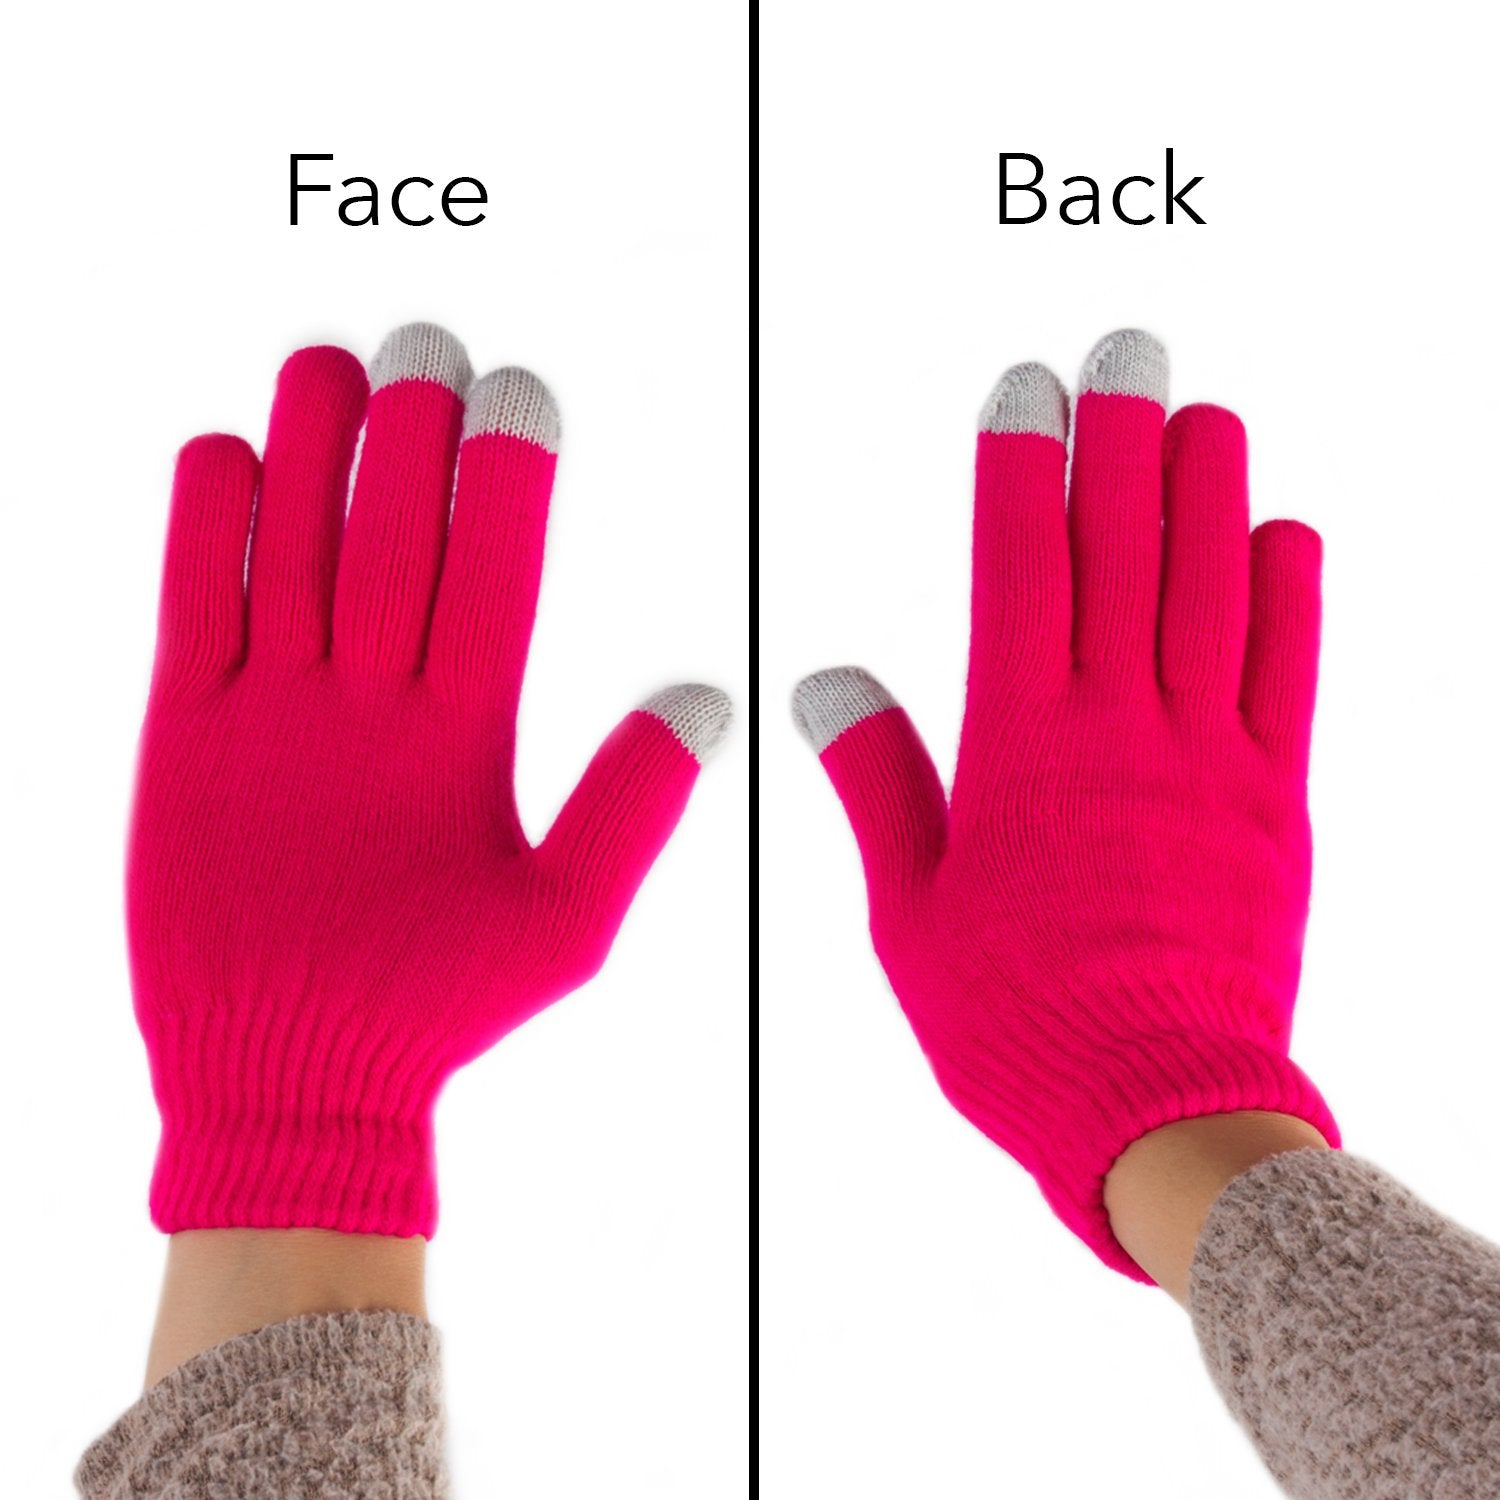 Imperial Home Women's Winter Touchscreen Gloves – 2 Pair Outdoor Spandex Texting Mittens